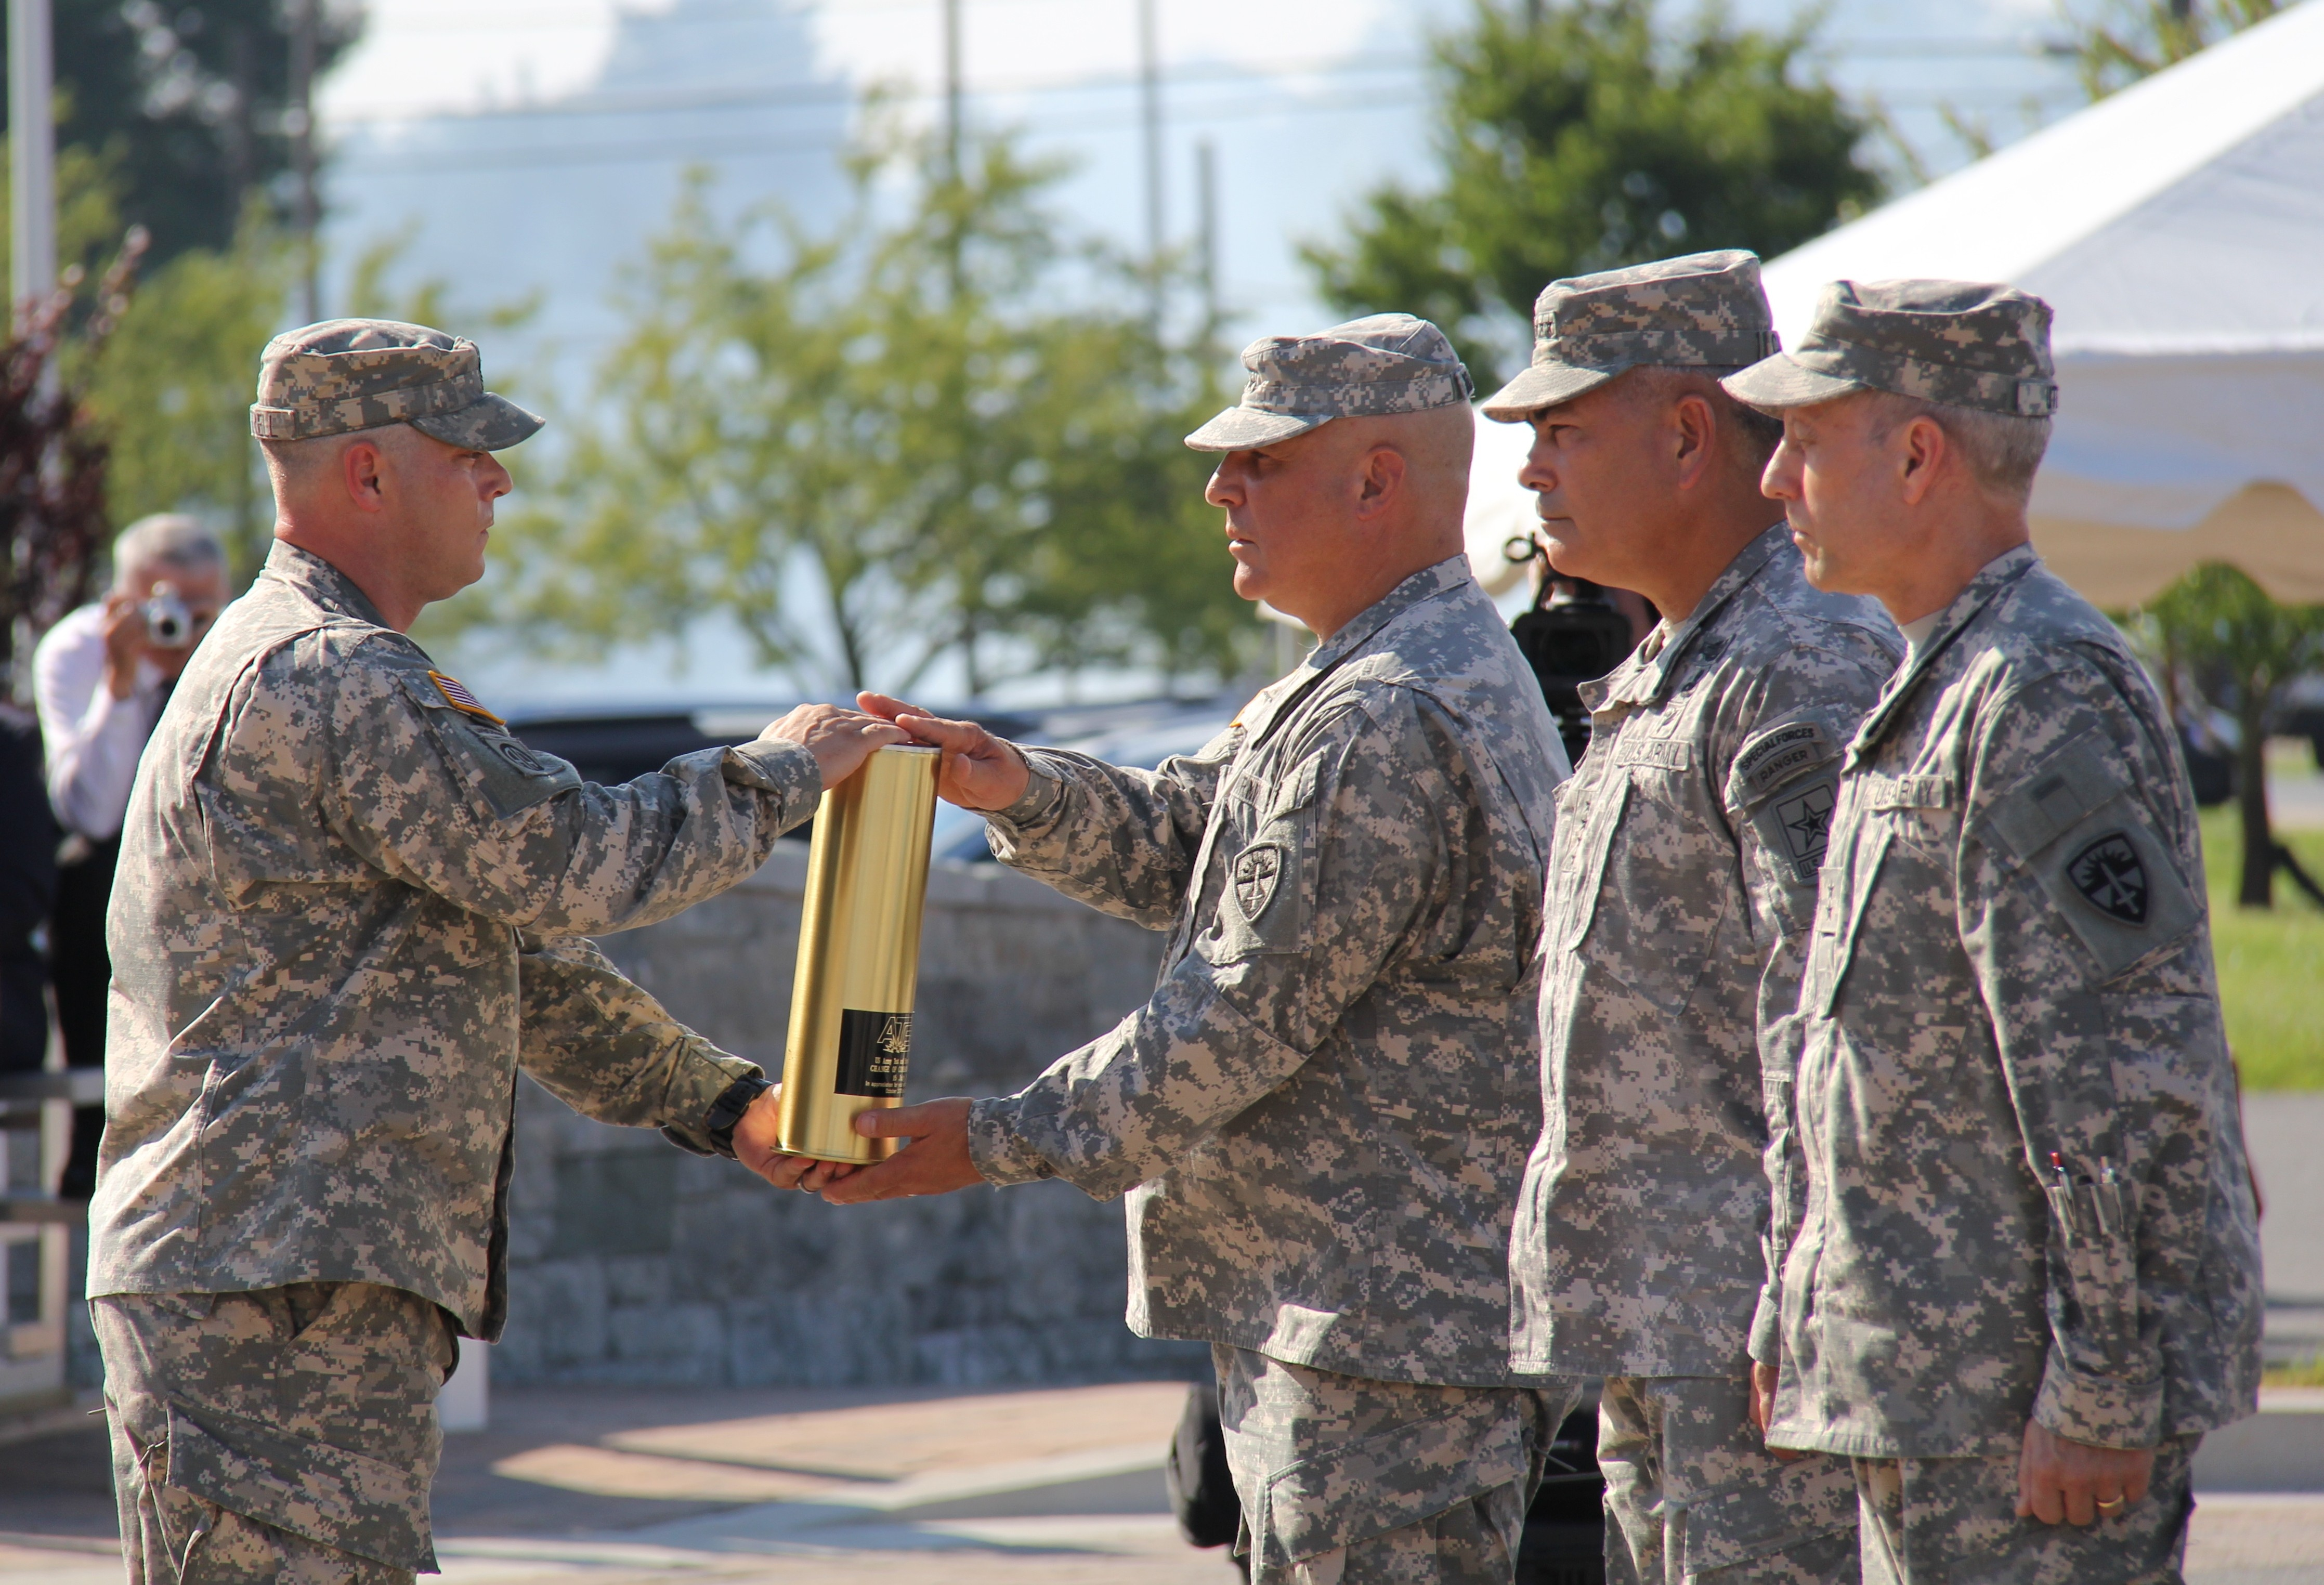 atec welcomes new commanding general dellarocco to retire atec welcomes new commanding general dellarocco to retire